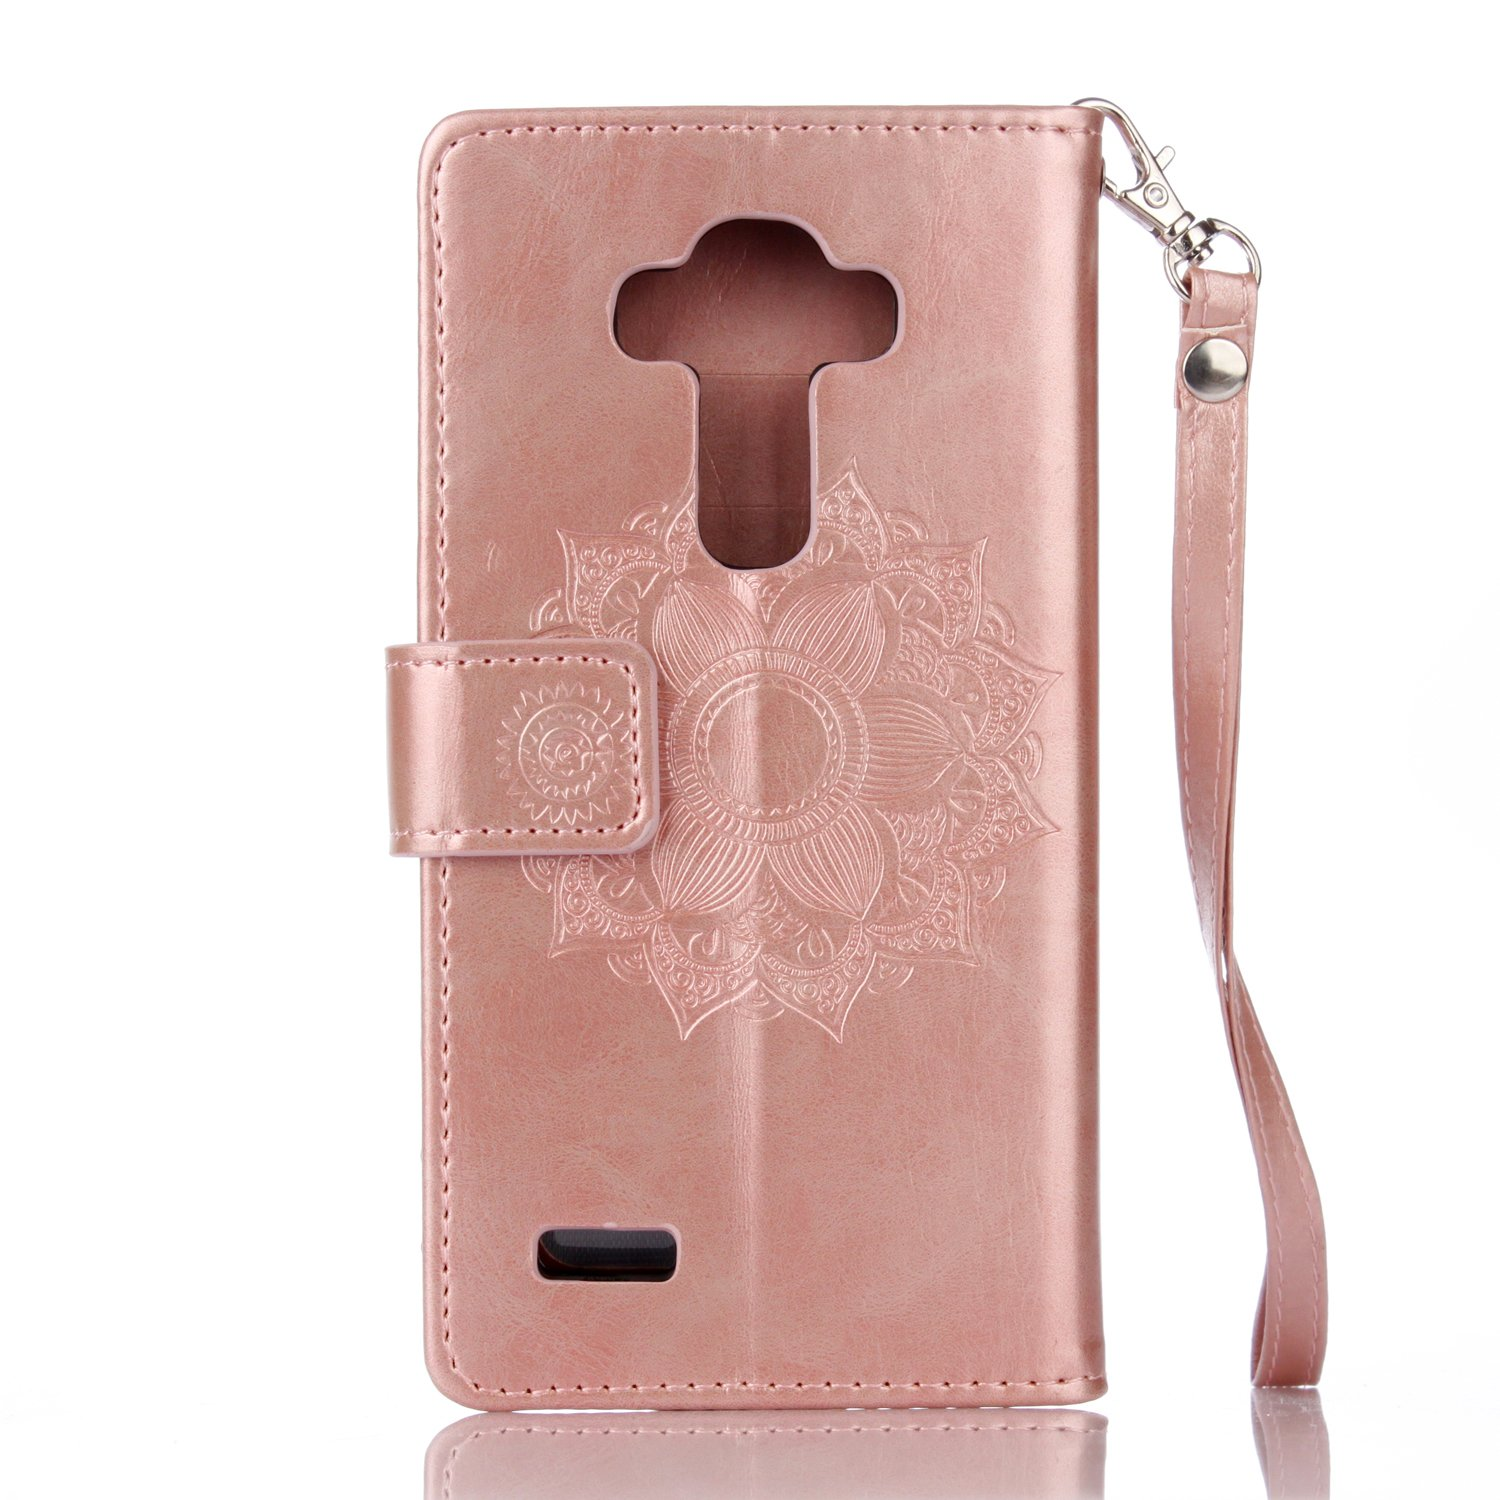 IKASEFU LG G4 Case,Clear Crown Rhinestone Diamond Bling Glitter Wallet with Card Holder Emboss Mandala Floral Pu Leather Magnetic Flip Case Protective Cover for LG G4,Rosa Gold by IKASEFU (Image #5)